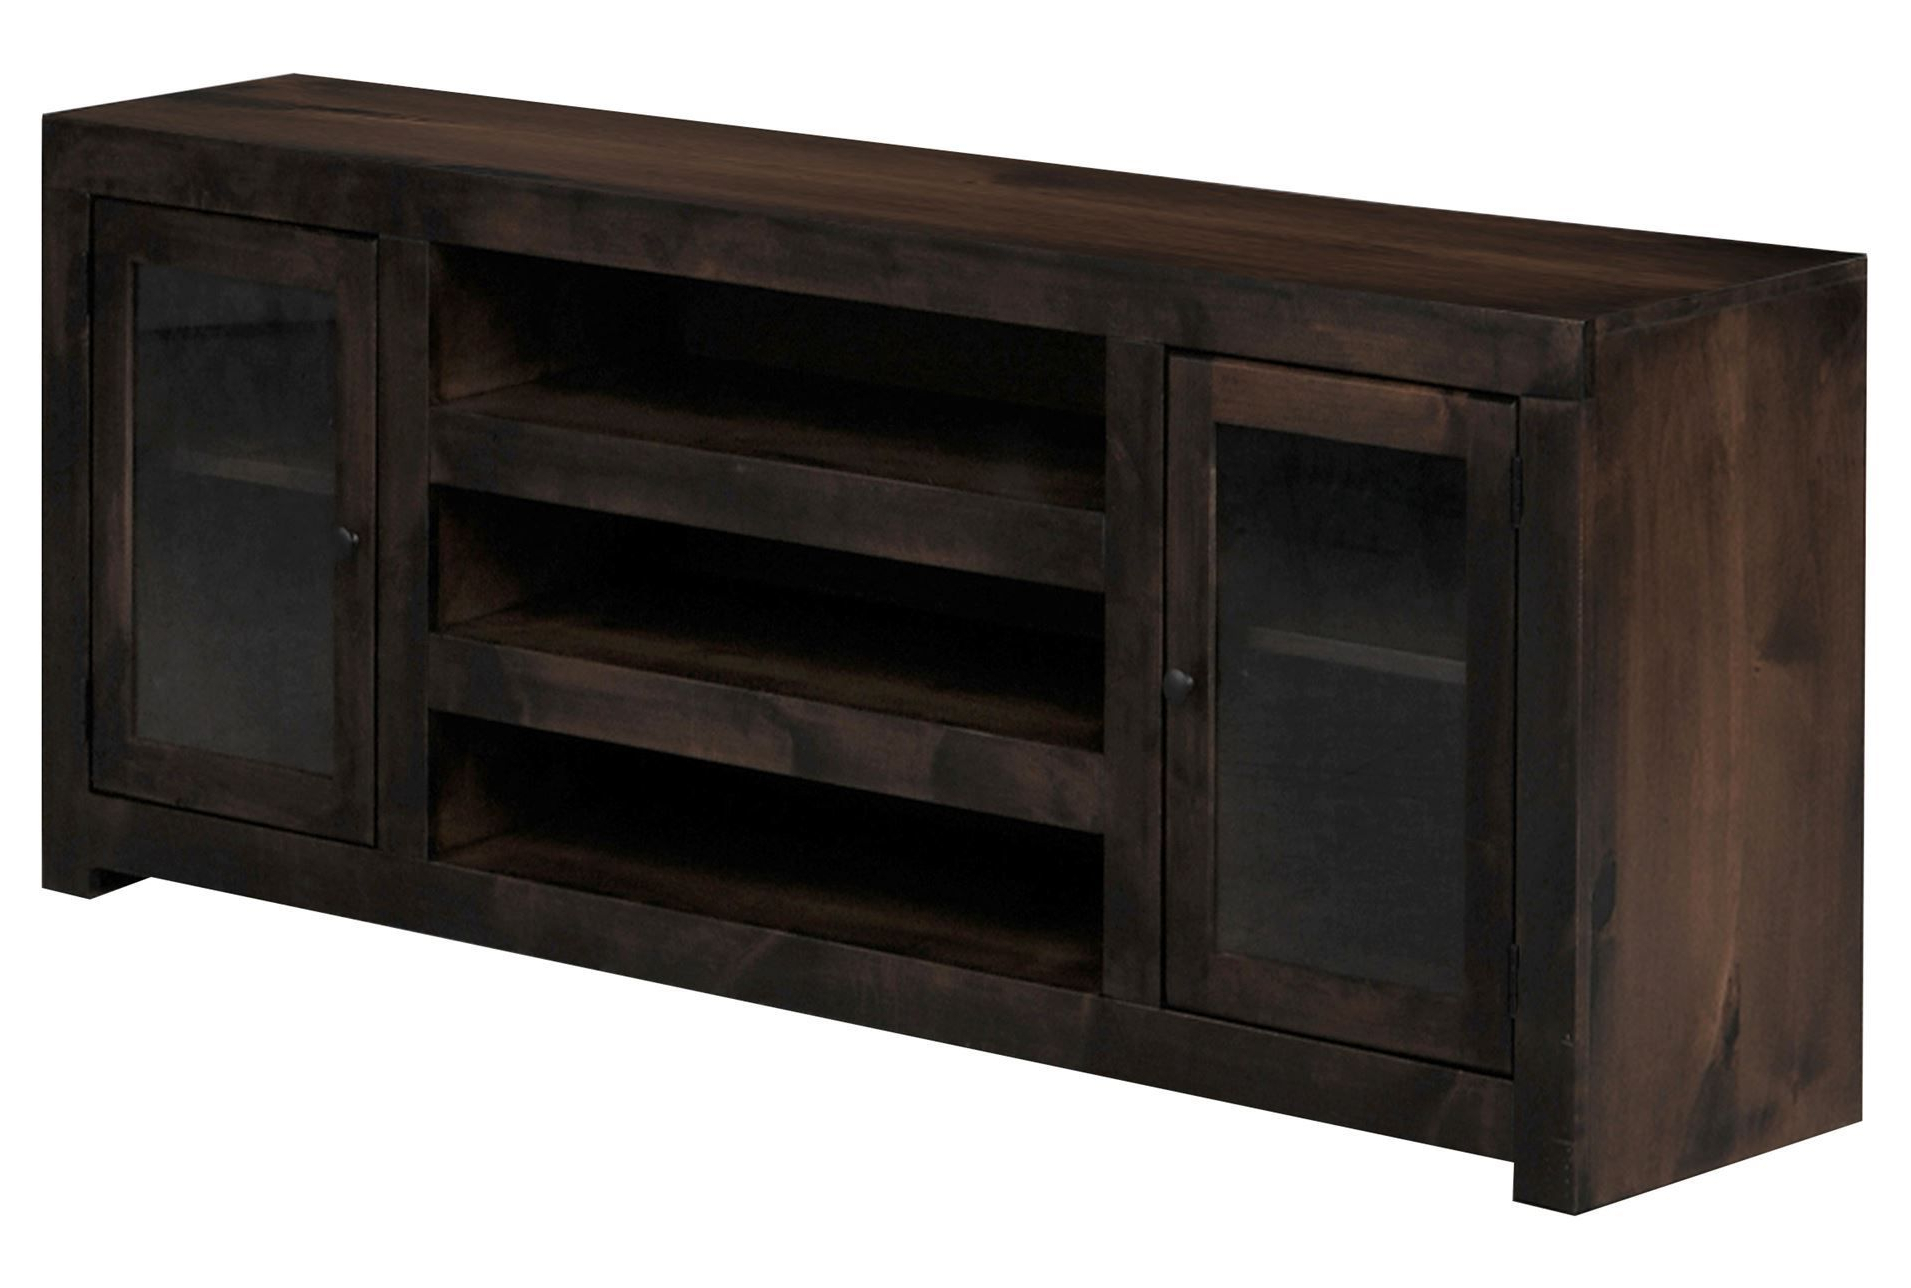 Walton 72 Inch Tv Stand | Man Cave | Pinterest | Tvs, Console And Regarding Walton Grey 72 Inch Tv Stands (View 14 of 20)